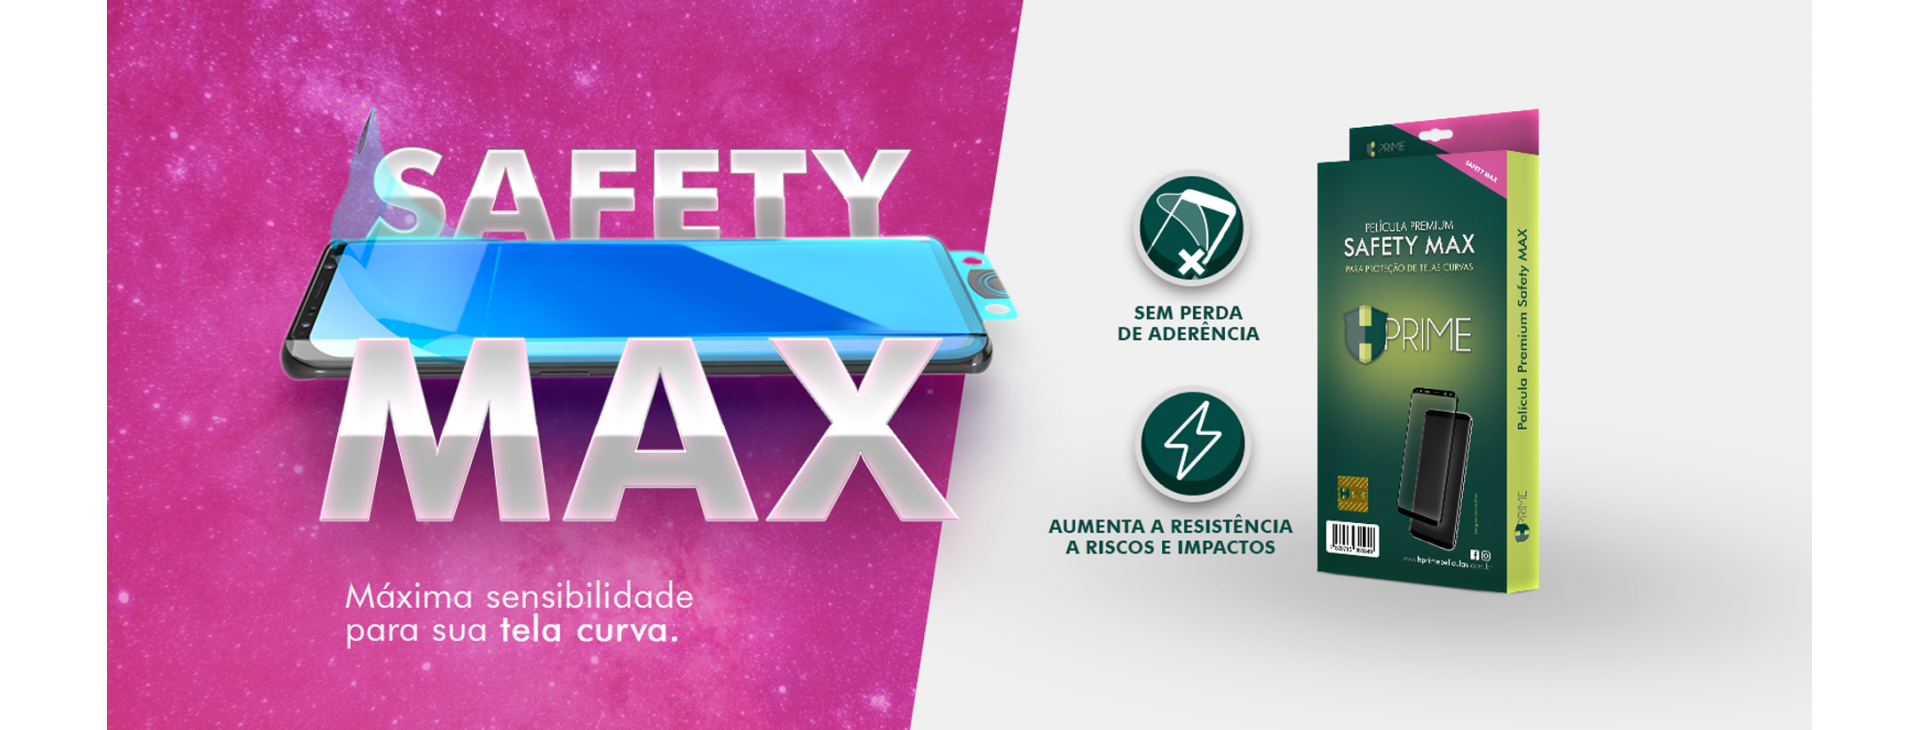 Safety MAX_